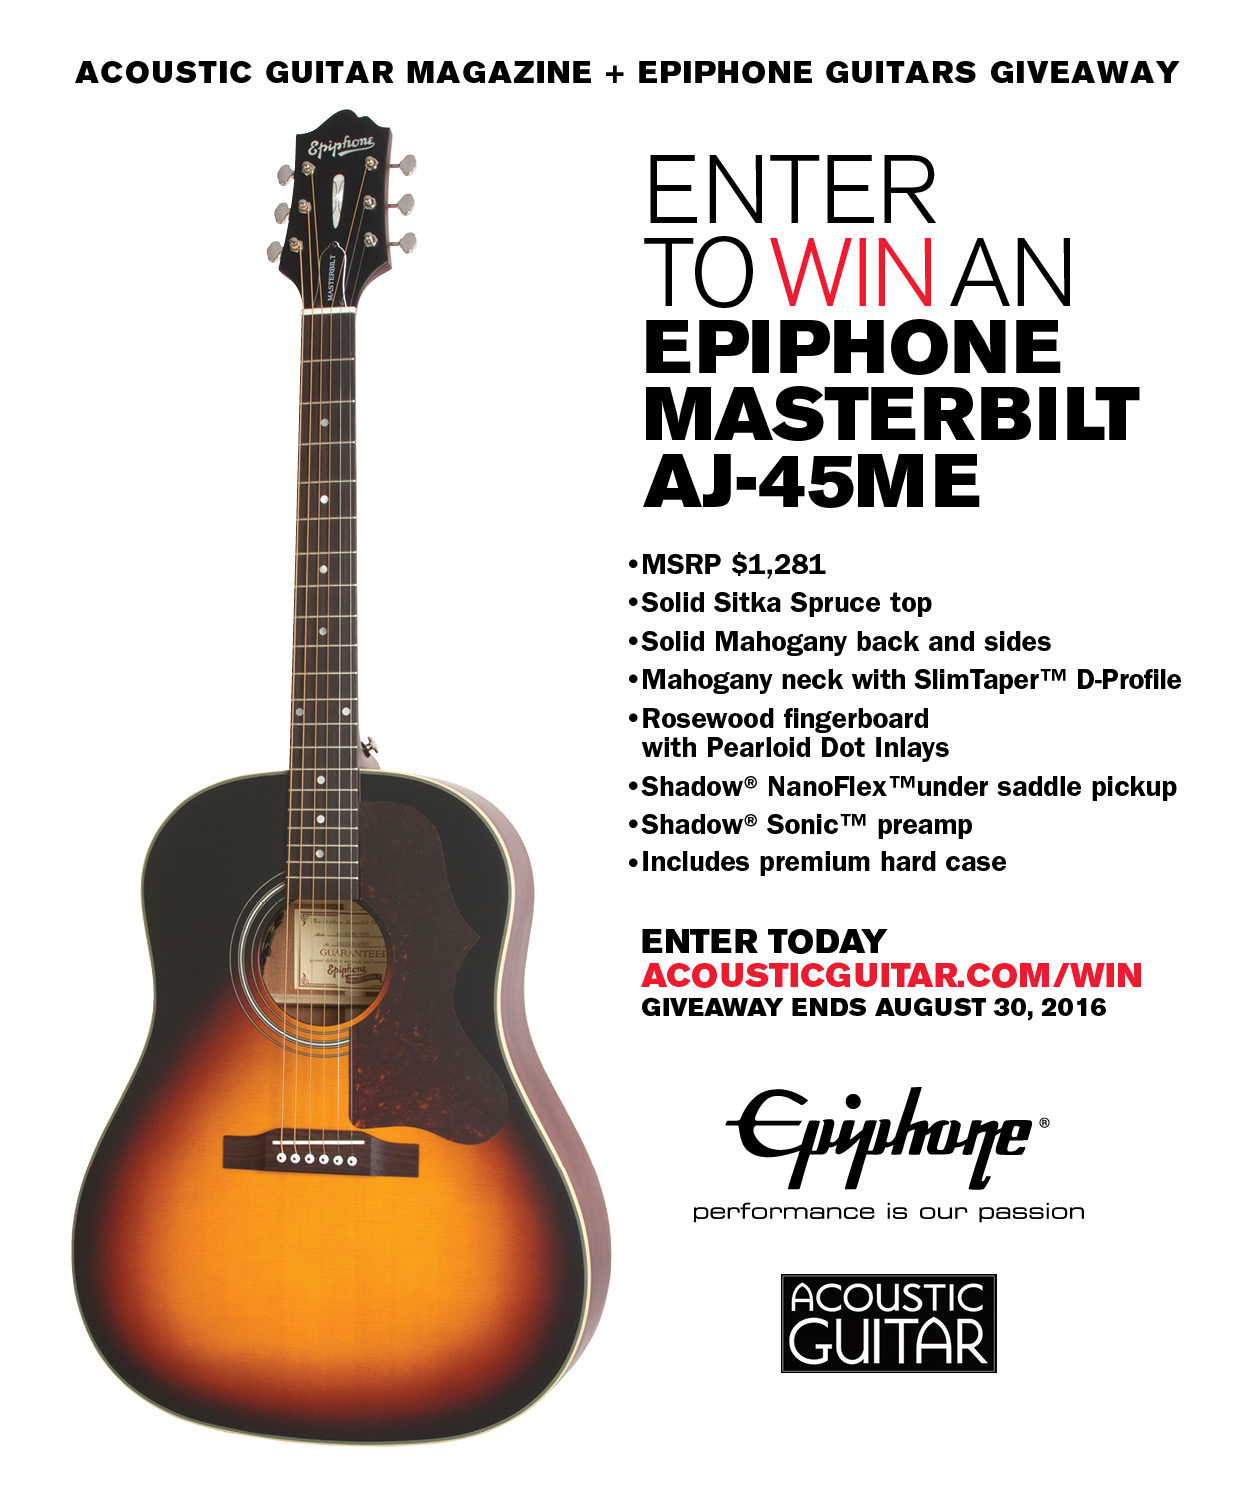 enter to win an epiphone masterbilt aj 45me acoustic guitar. Black Bedroom Furniture Sets. Home Design Ideas